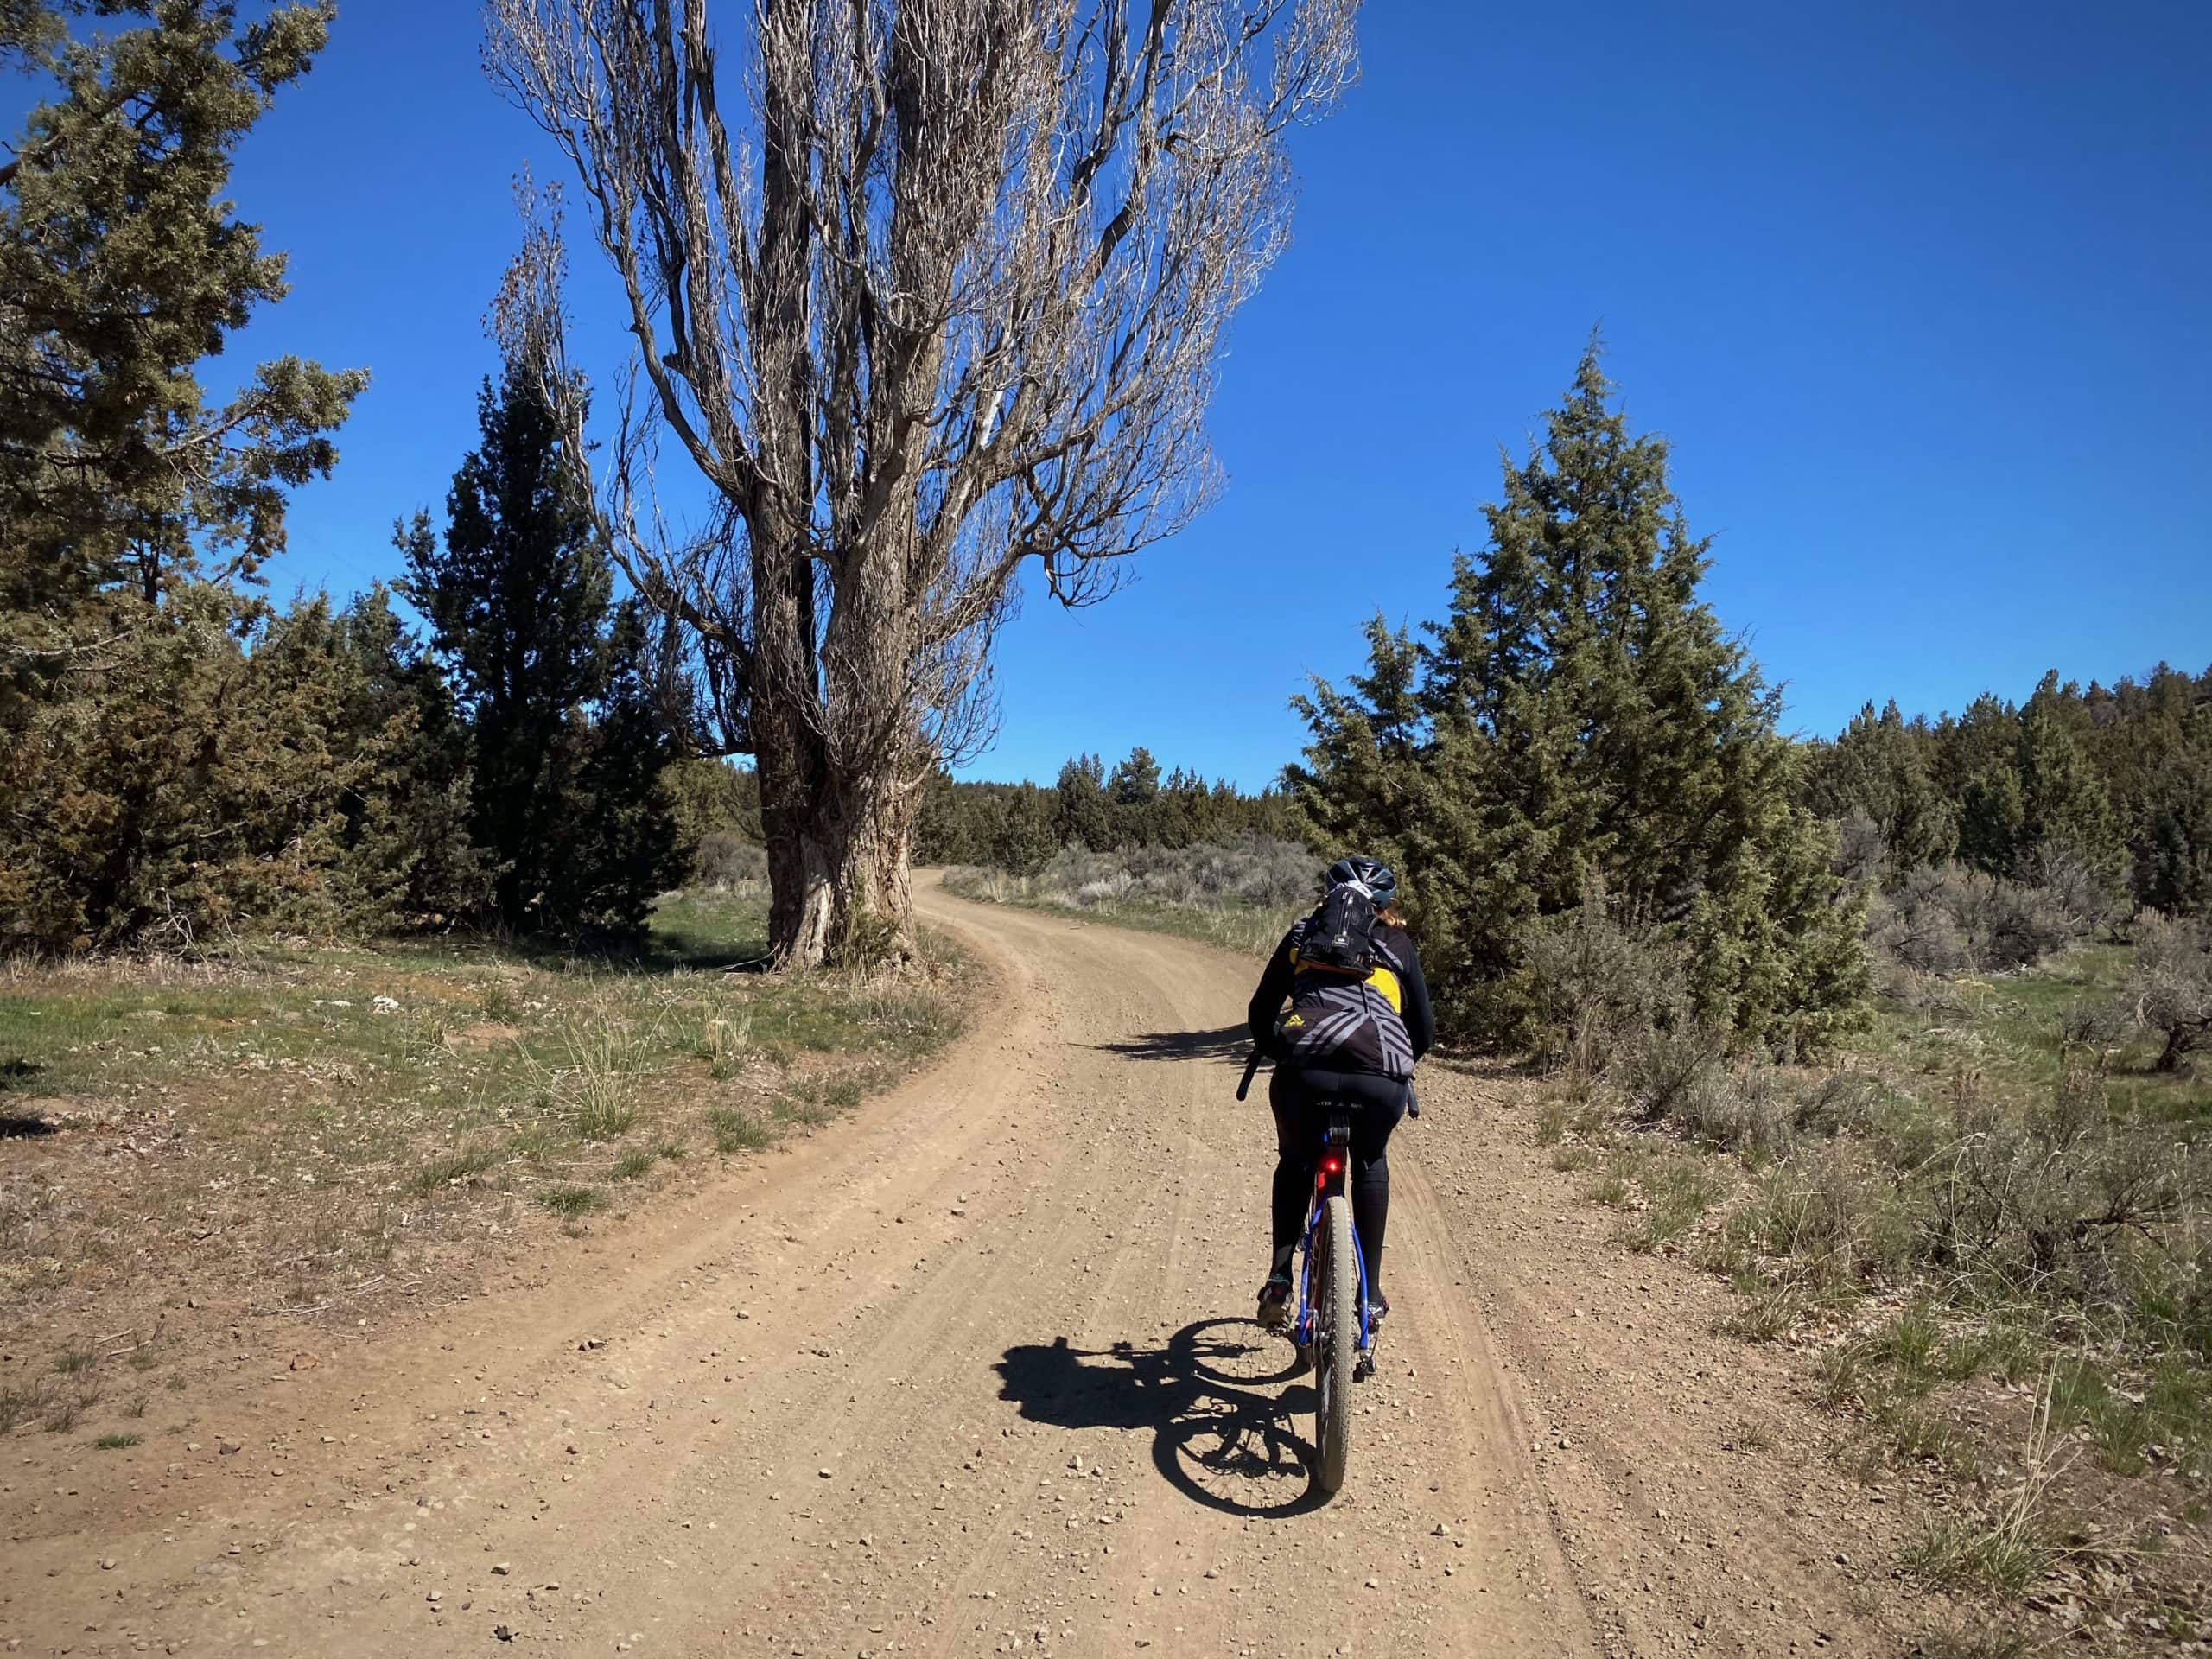 Gravel Girl on dirt road in the Crooked River National Grassland.